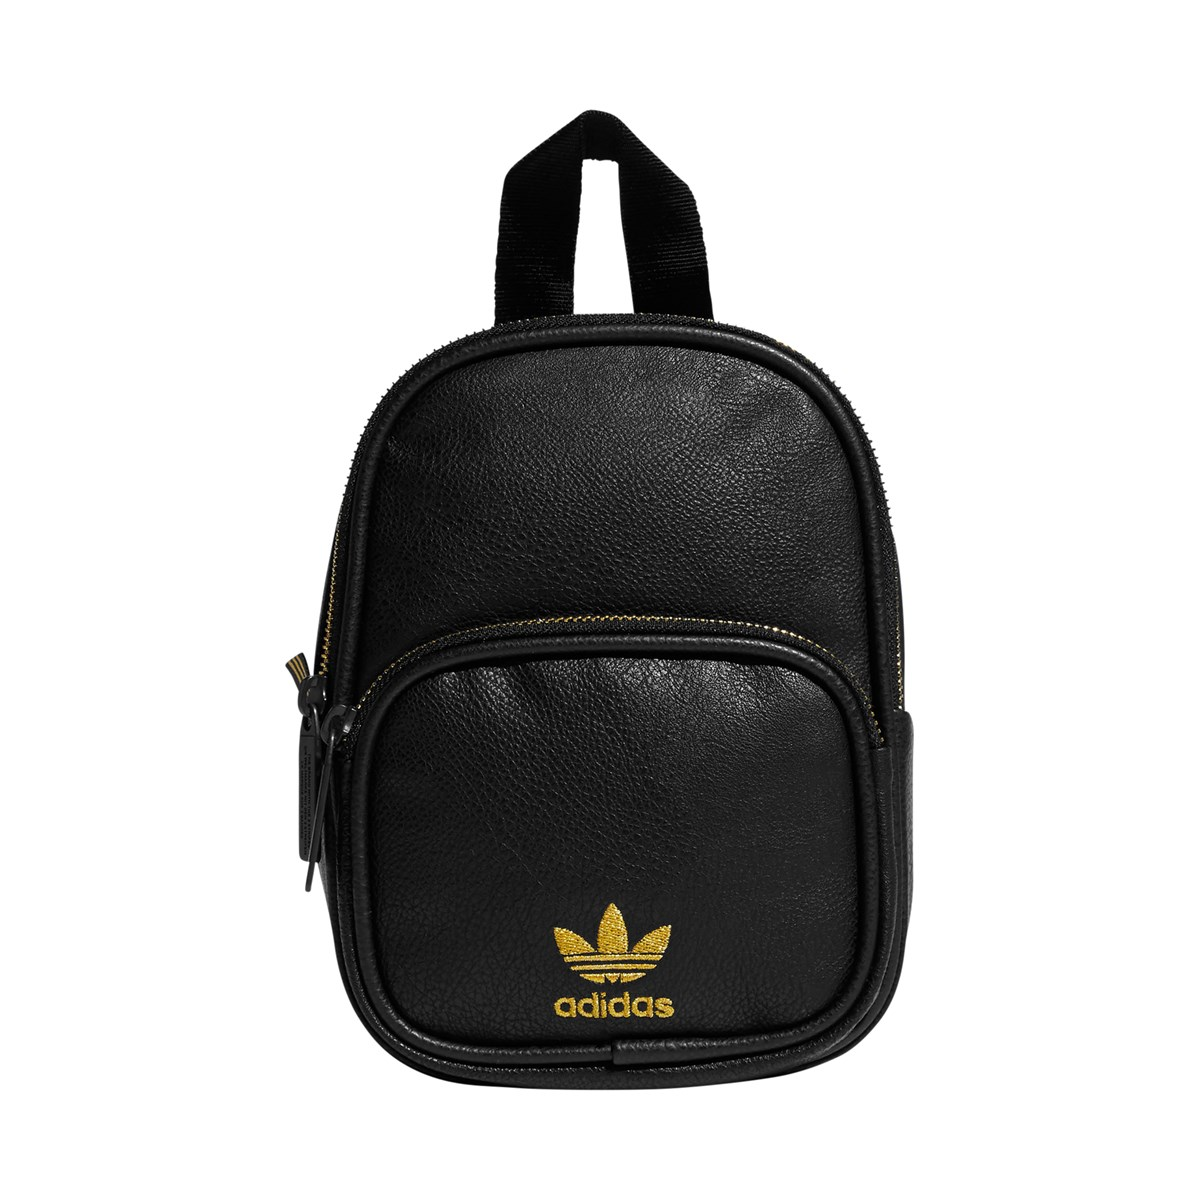 Originals Mini PU Leather Backpack in Black